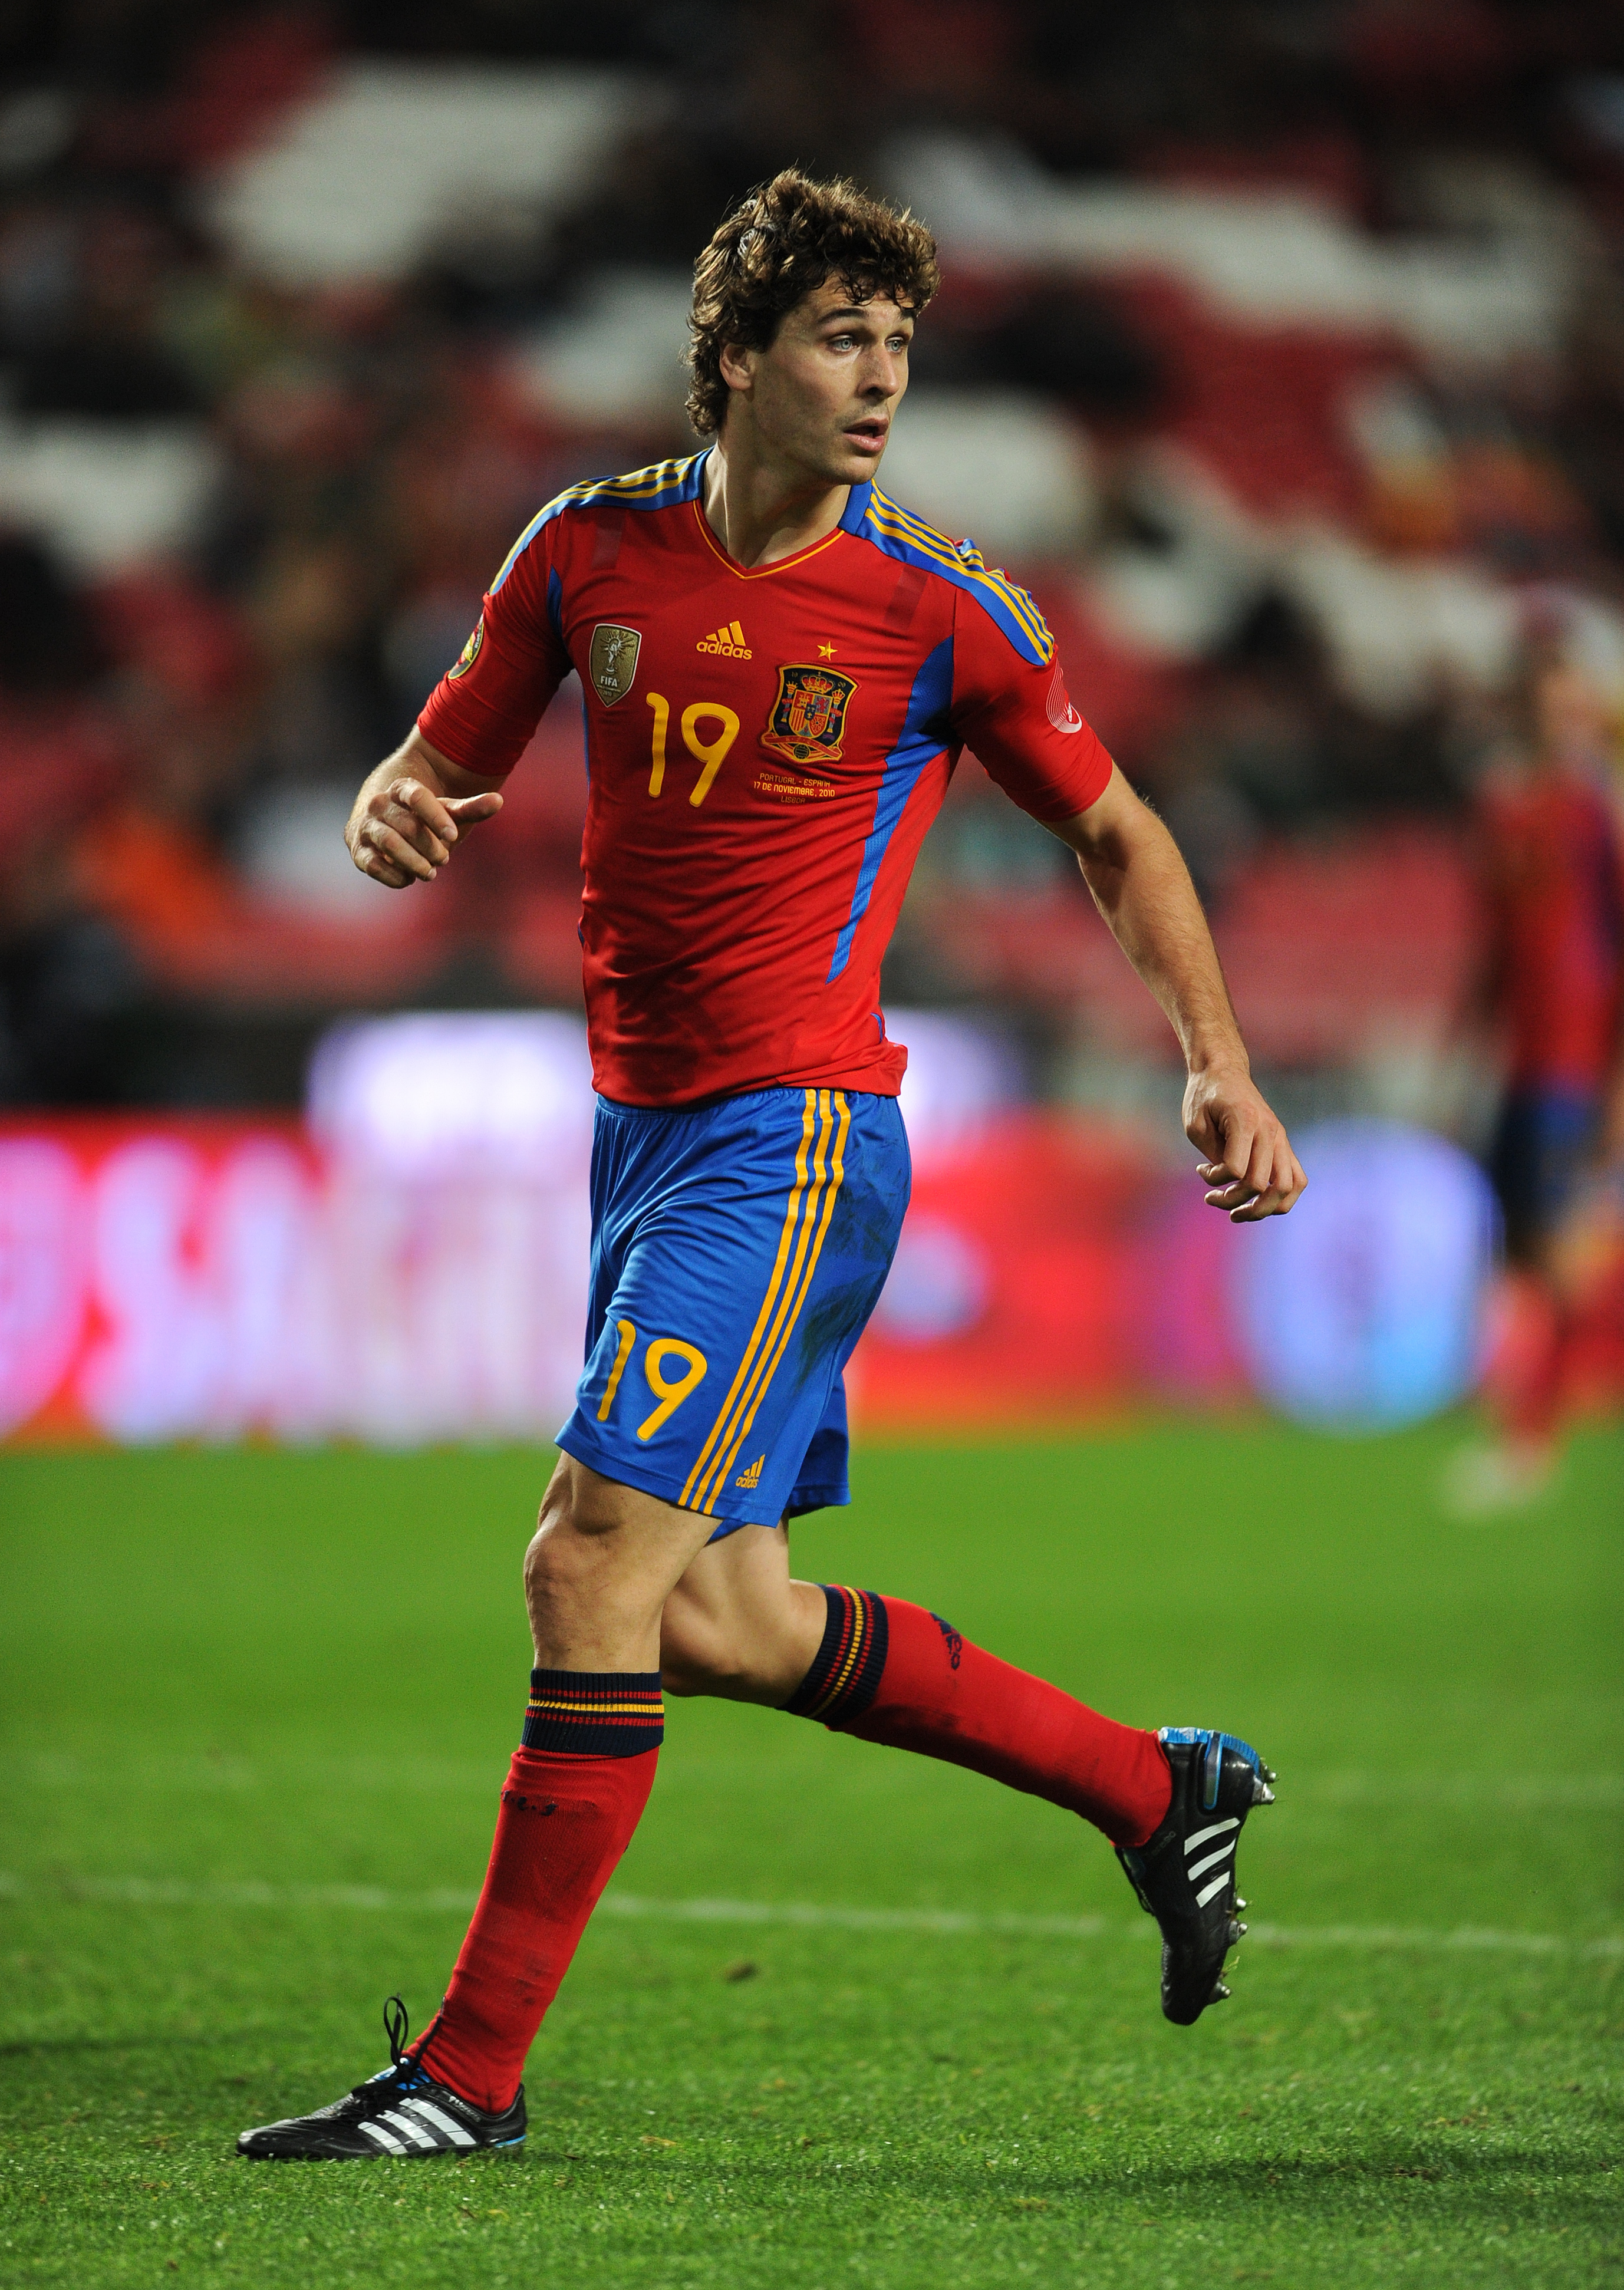 LISBON, PORTUGAL - NOVEMBER 17:  Fernando Llorente of Spain in action during the International Friendly match between Portugal and Spain at the Estadio da Luz on November 17, 2010 in Lisbon, Portugal.  (Photo by Jasper Juinen/Getty Images)